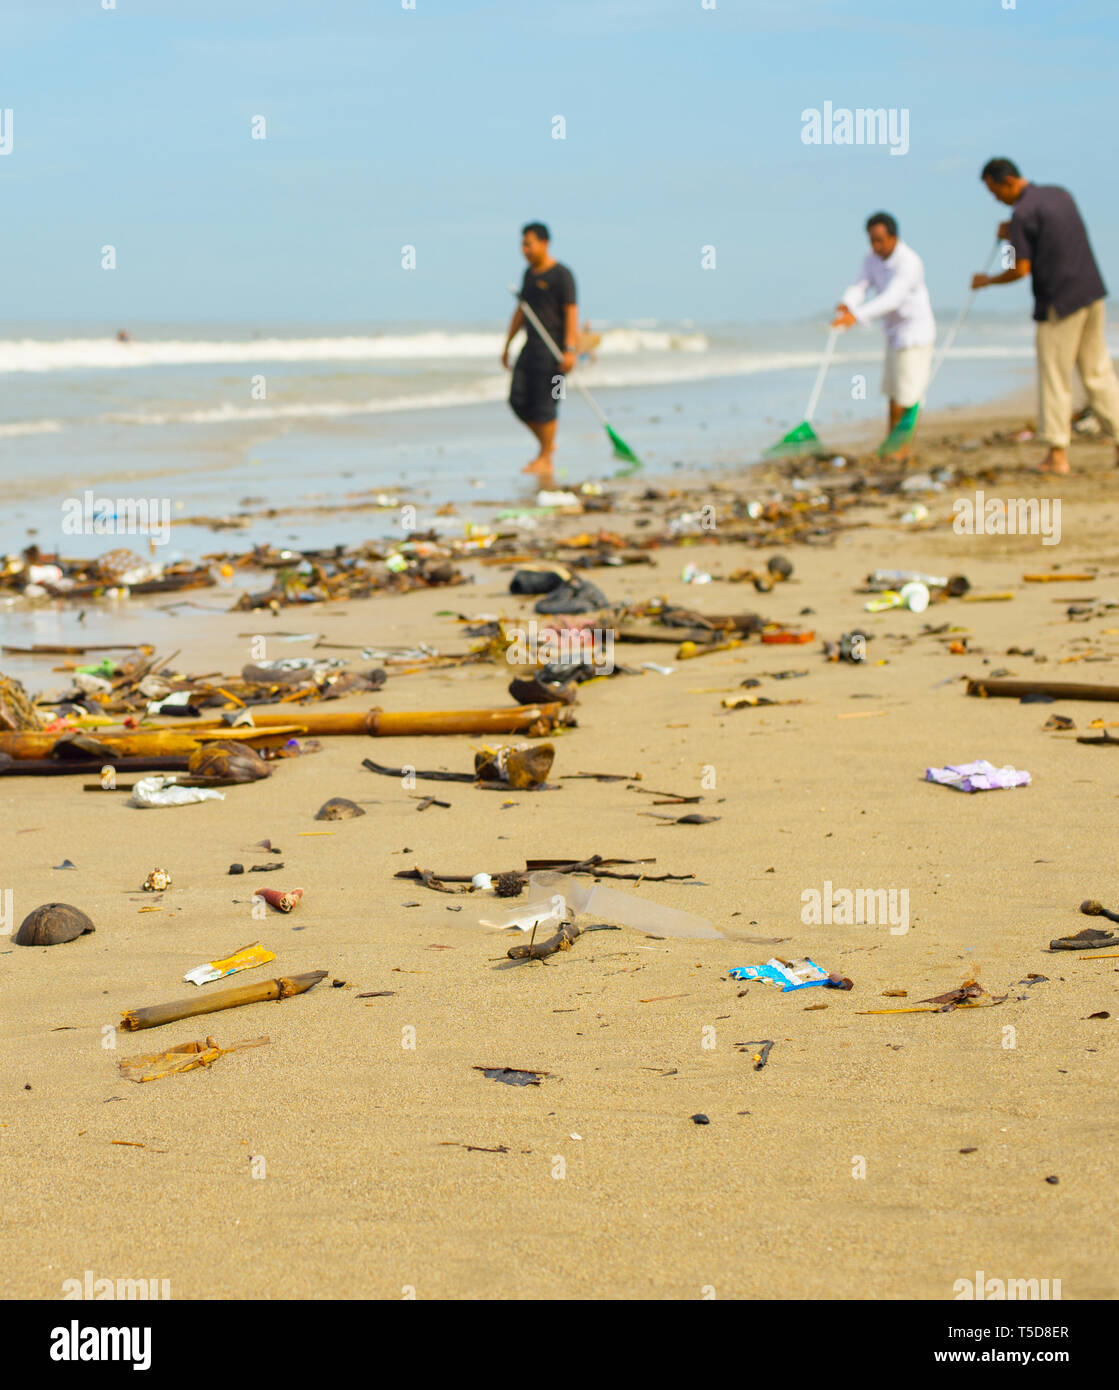 Group of people cleaning up beach from the garbage and plastic waste. - Stock Image